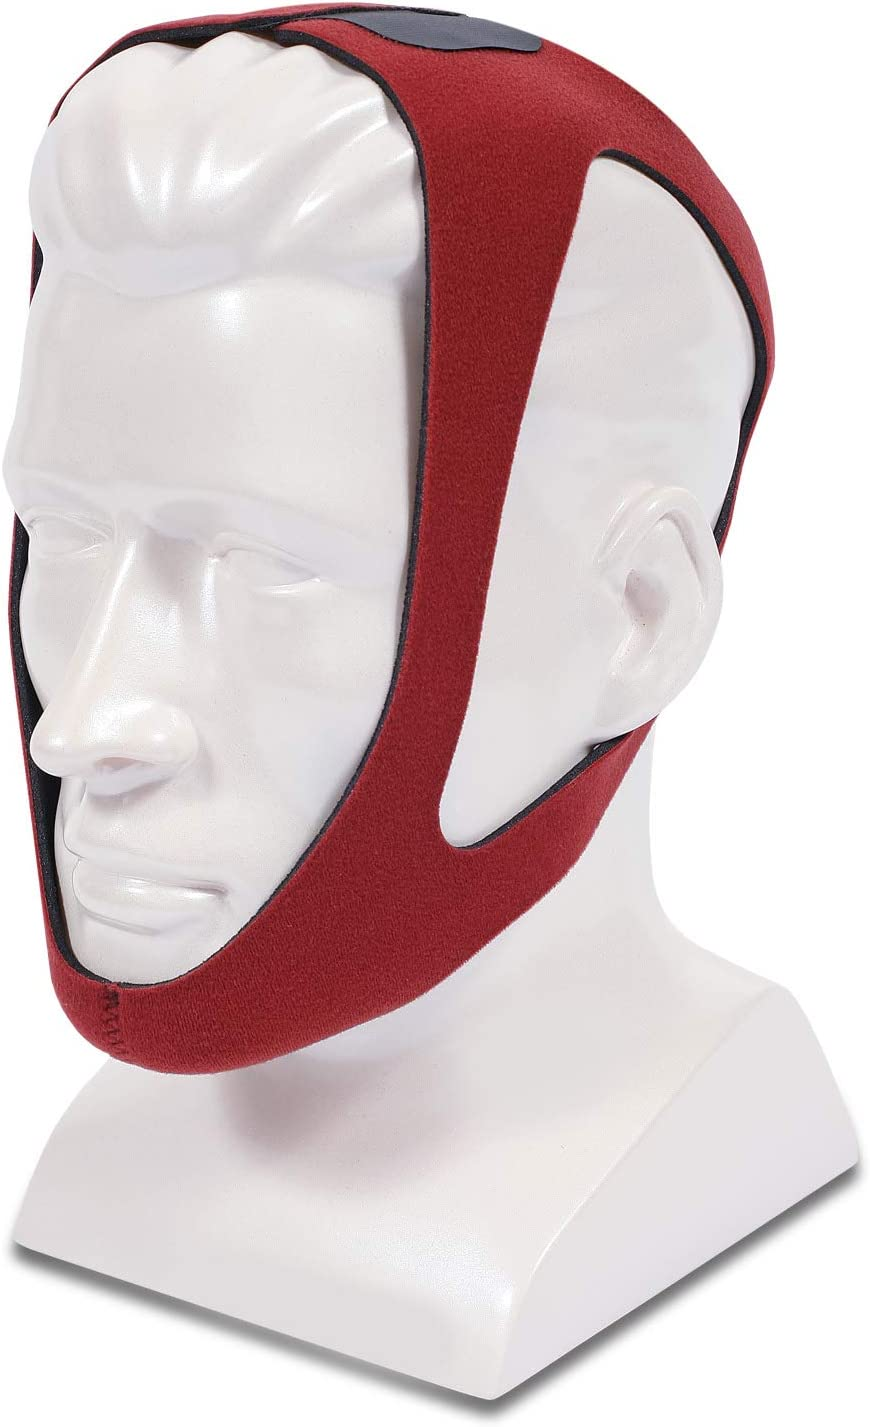 CareFusion Stop Snoring Chin Strap Small- Large: Health & Personal Care